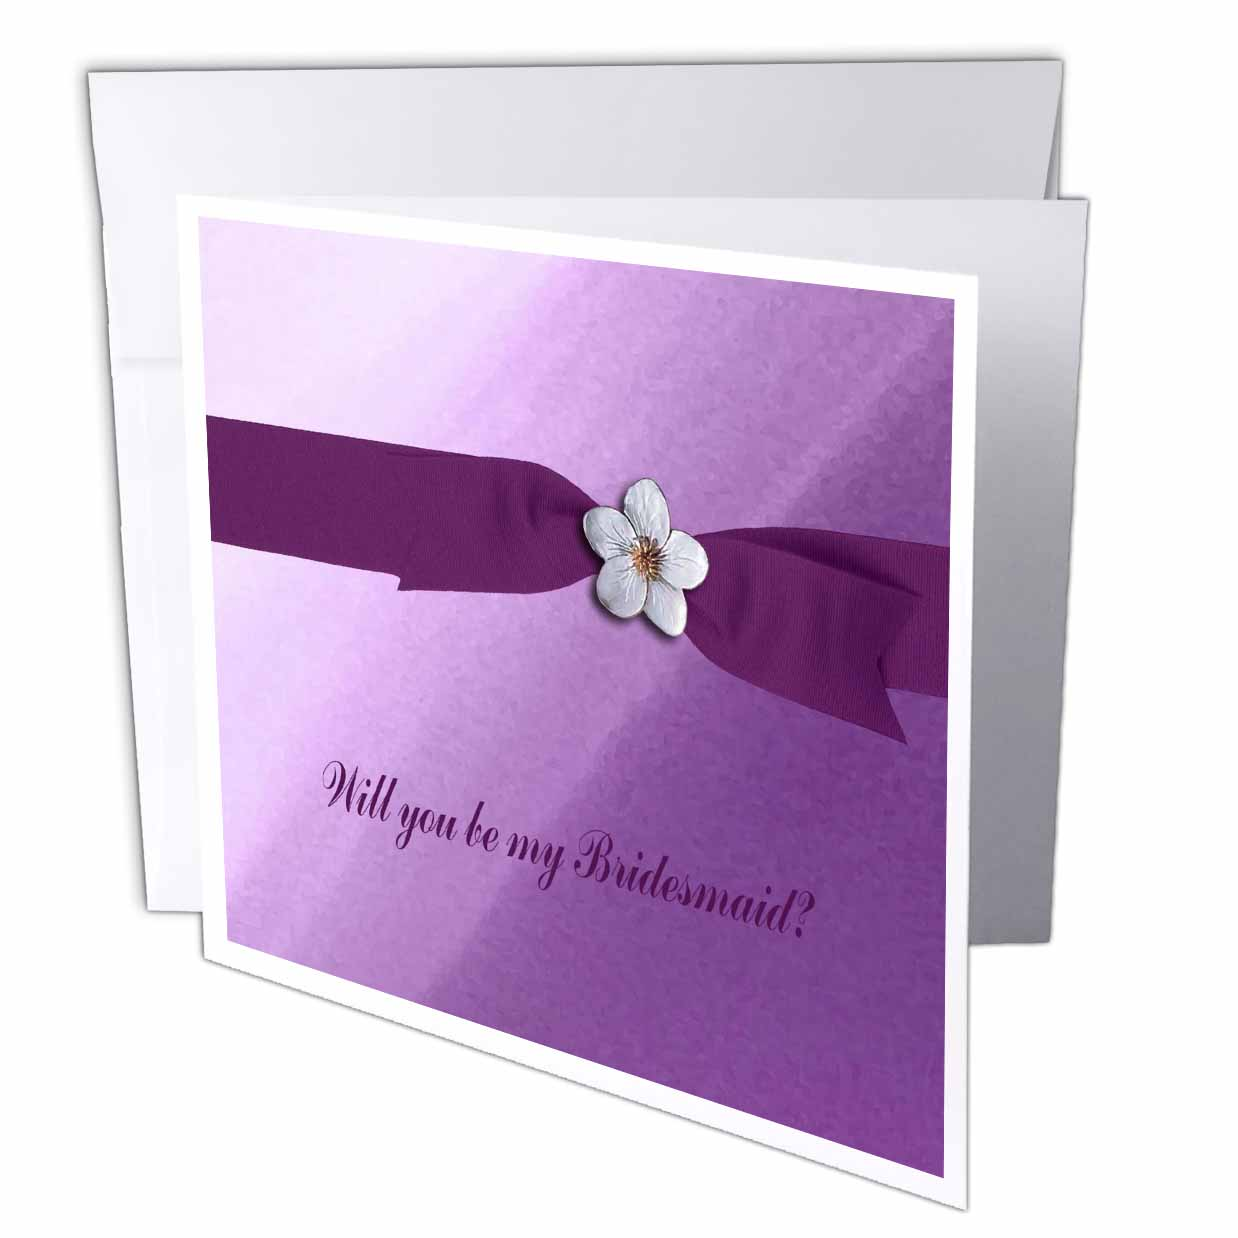 3dRose Flower on Ribbon, Purple, Bridesmaid Request, Greeting Cards, 6 x 6 inches, set of 12